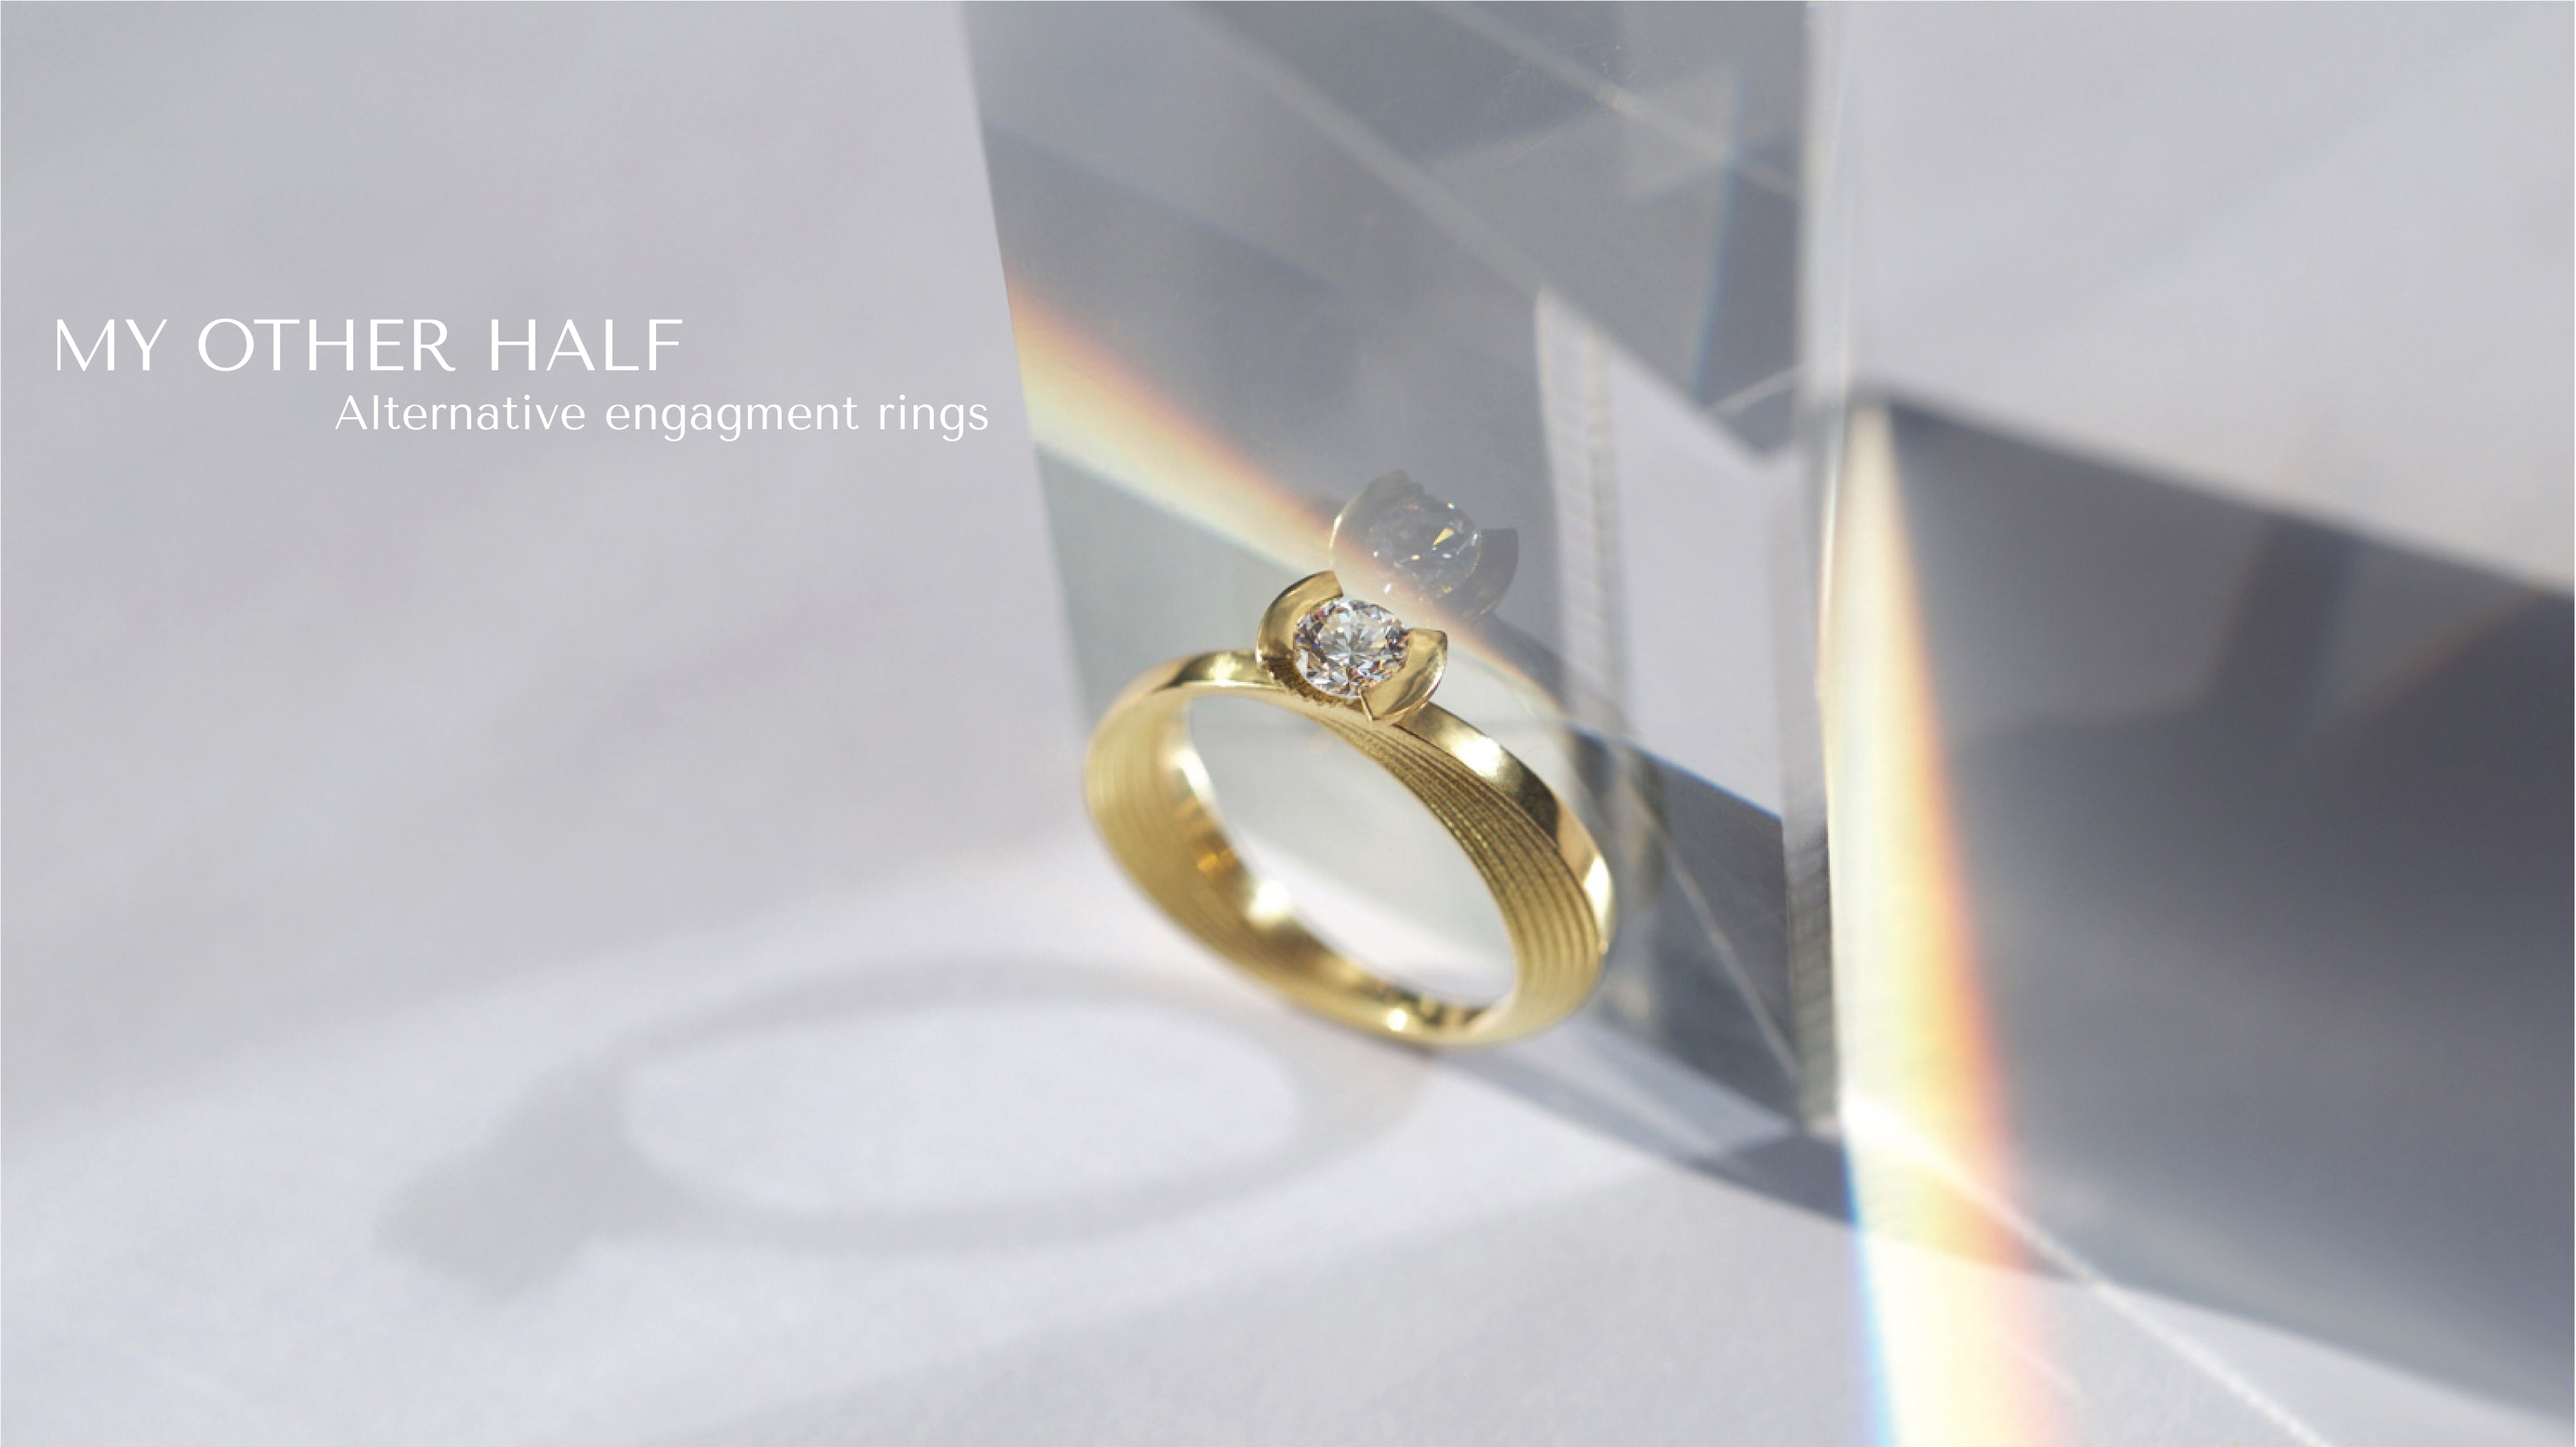 Ana Thompson Fine Jewellery - My Other Half engagement ring 2020